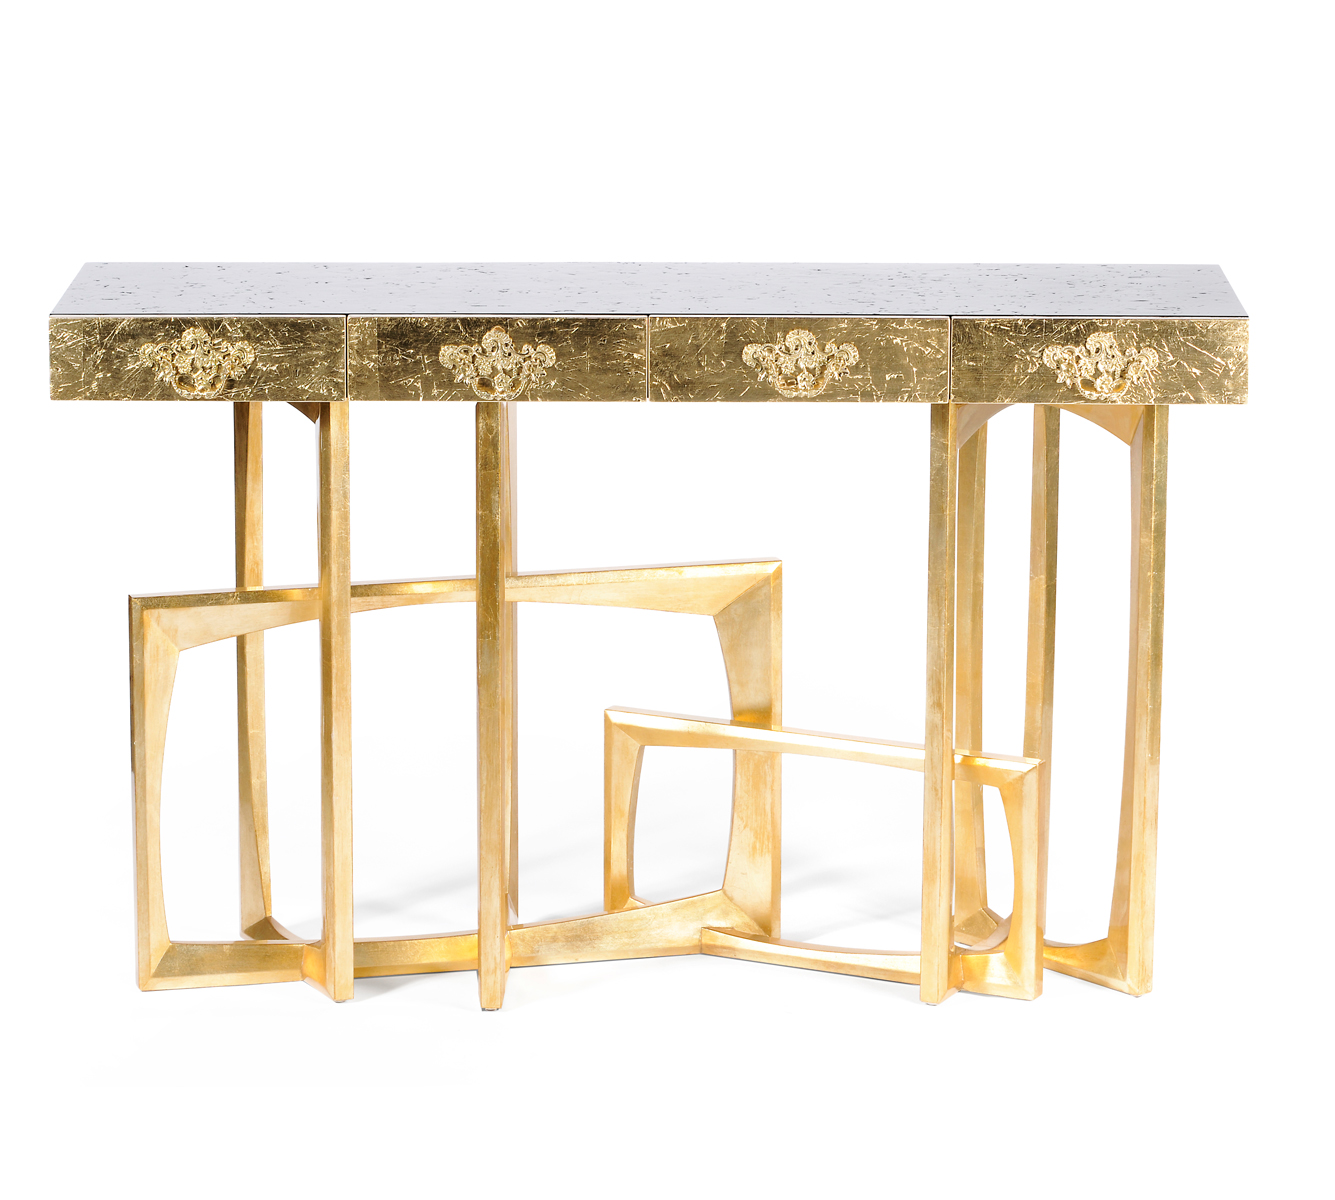 10 Amazing Modern Console Tables for Your Living Room Design modern console tables 10 Amazing Modern Console Tables for Your Living Room Design Console Table for Your Living Room Design7